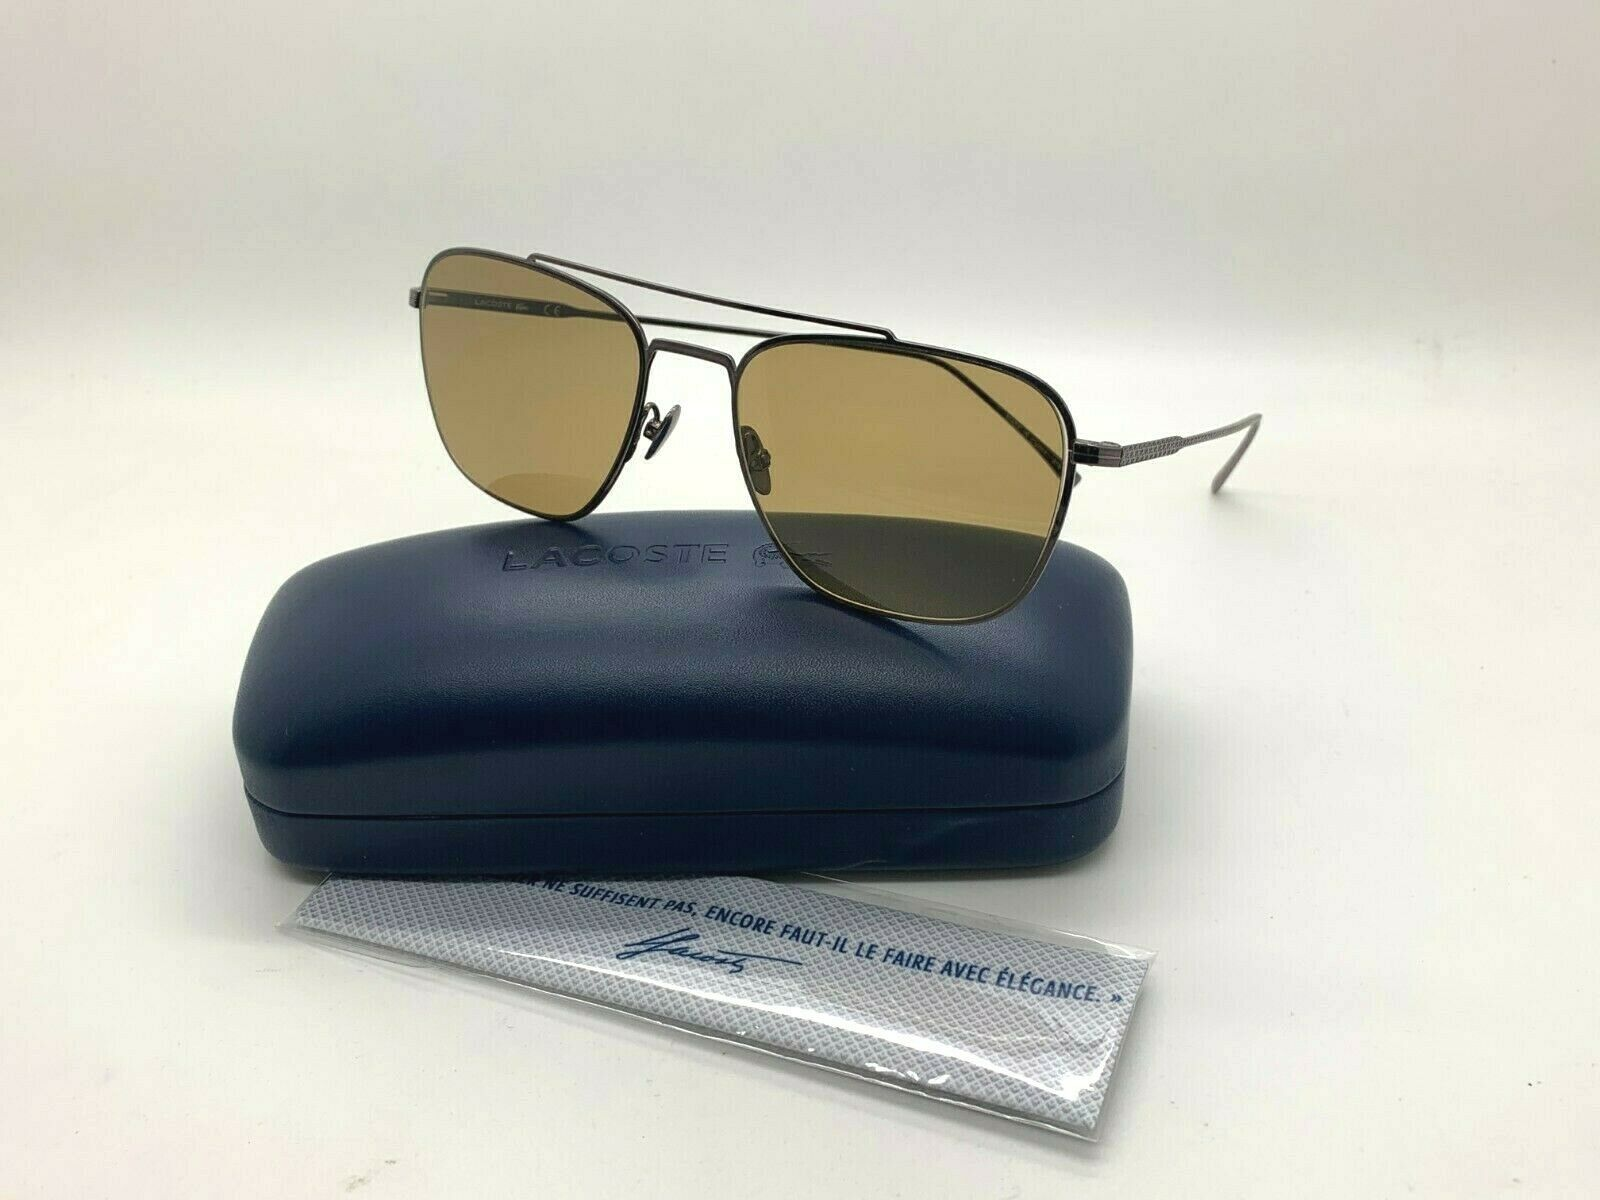 Primary image for NEW Lacoste Sunglasses L201SPC 033 GUNMETAL  54-18-145 CASE&CLOTH